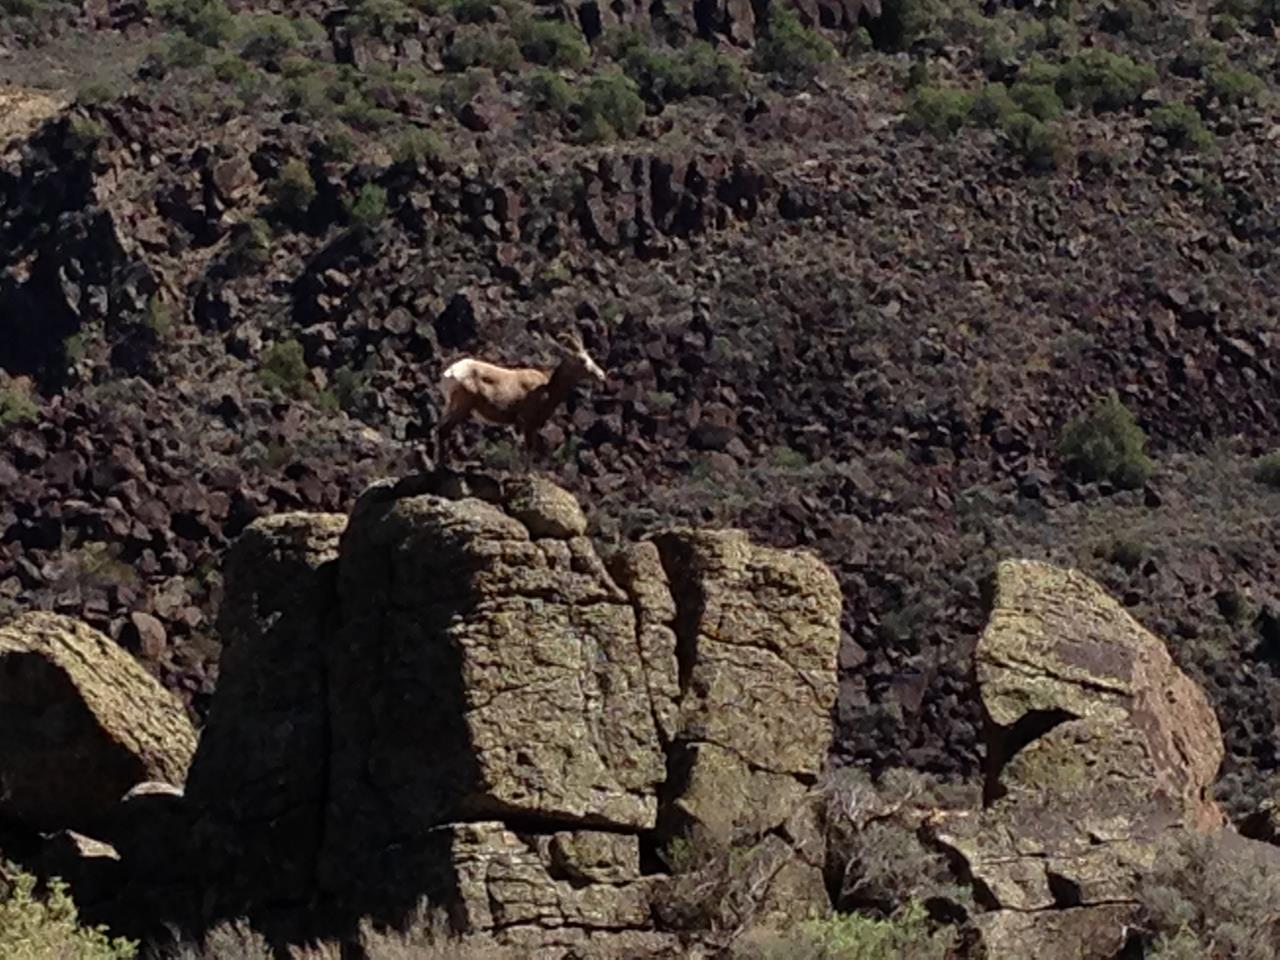 #Taos recreation #wildlife #big horn sheep #Rio Grande Gorge #Taos #New Mexico